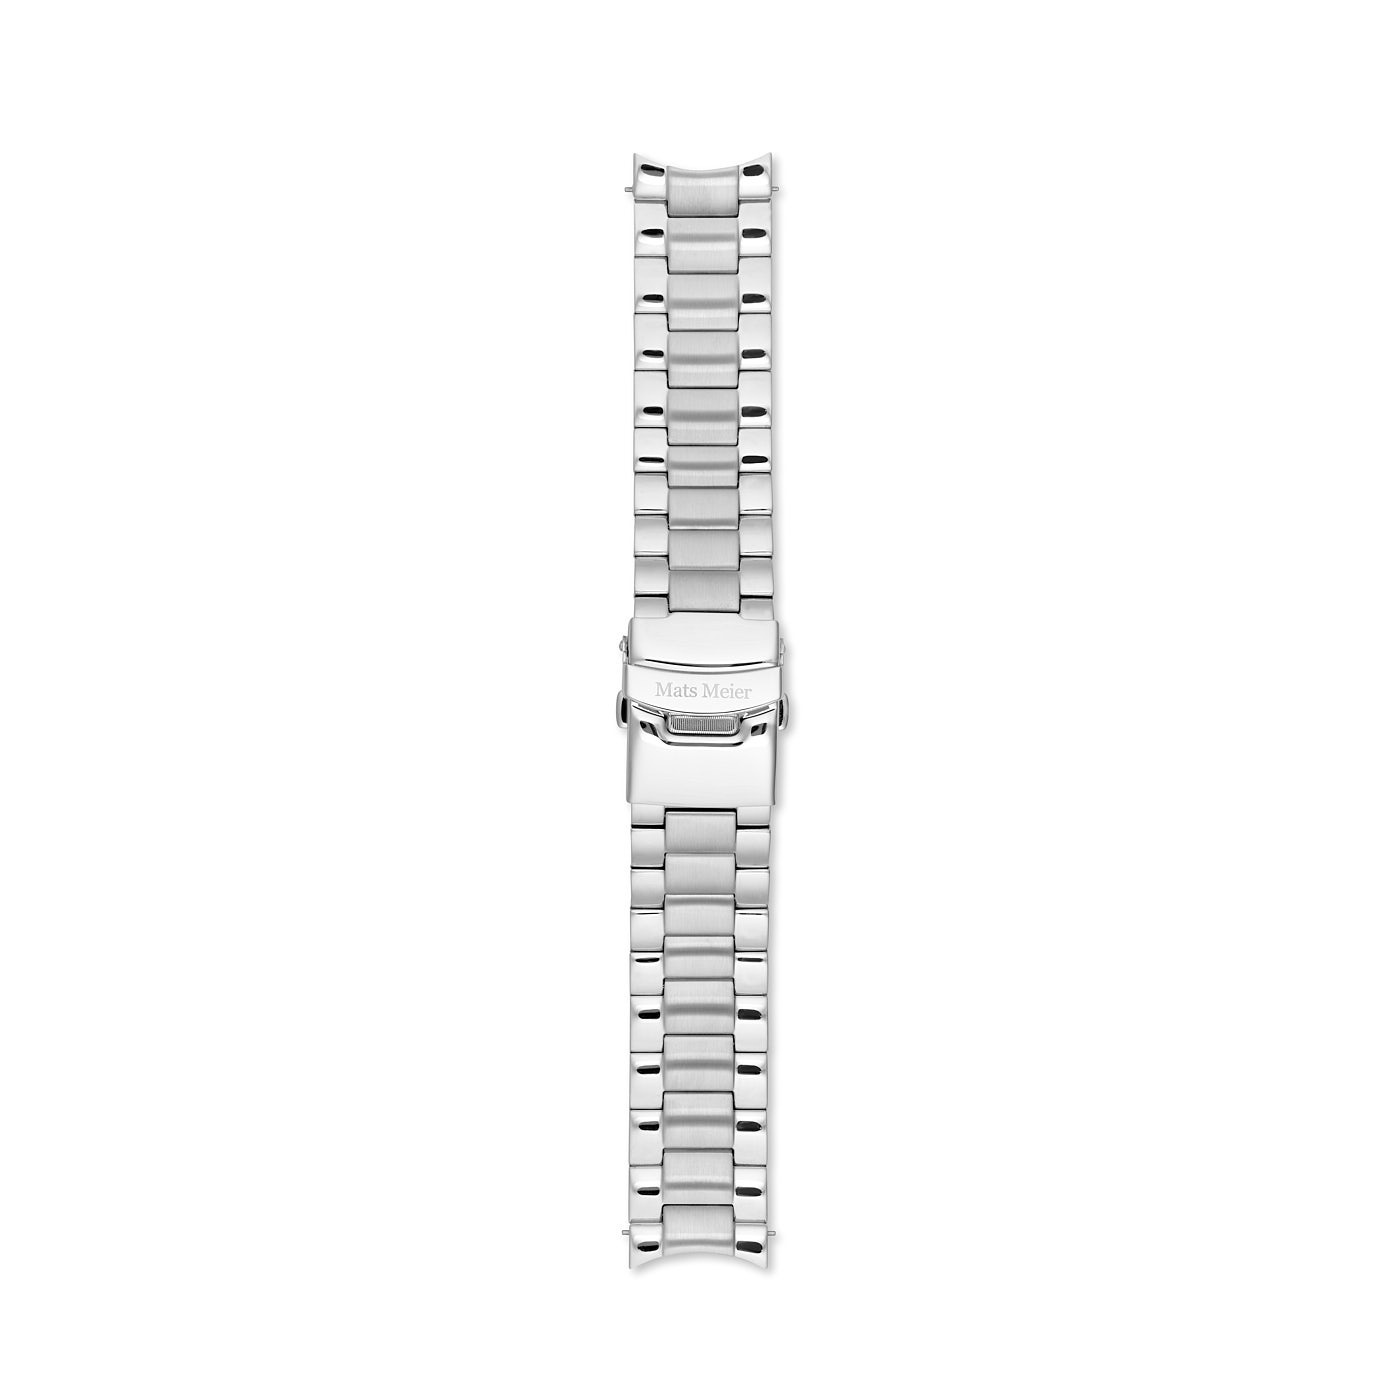 Mats Meier Stainless steel strap 22mm silver colored